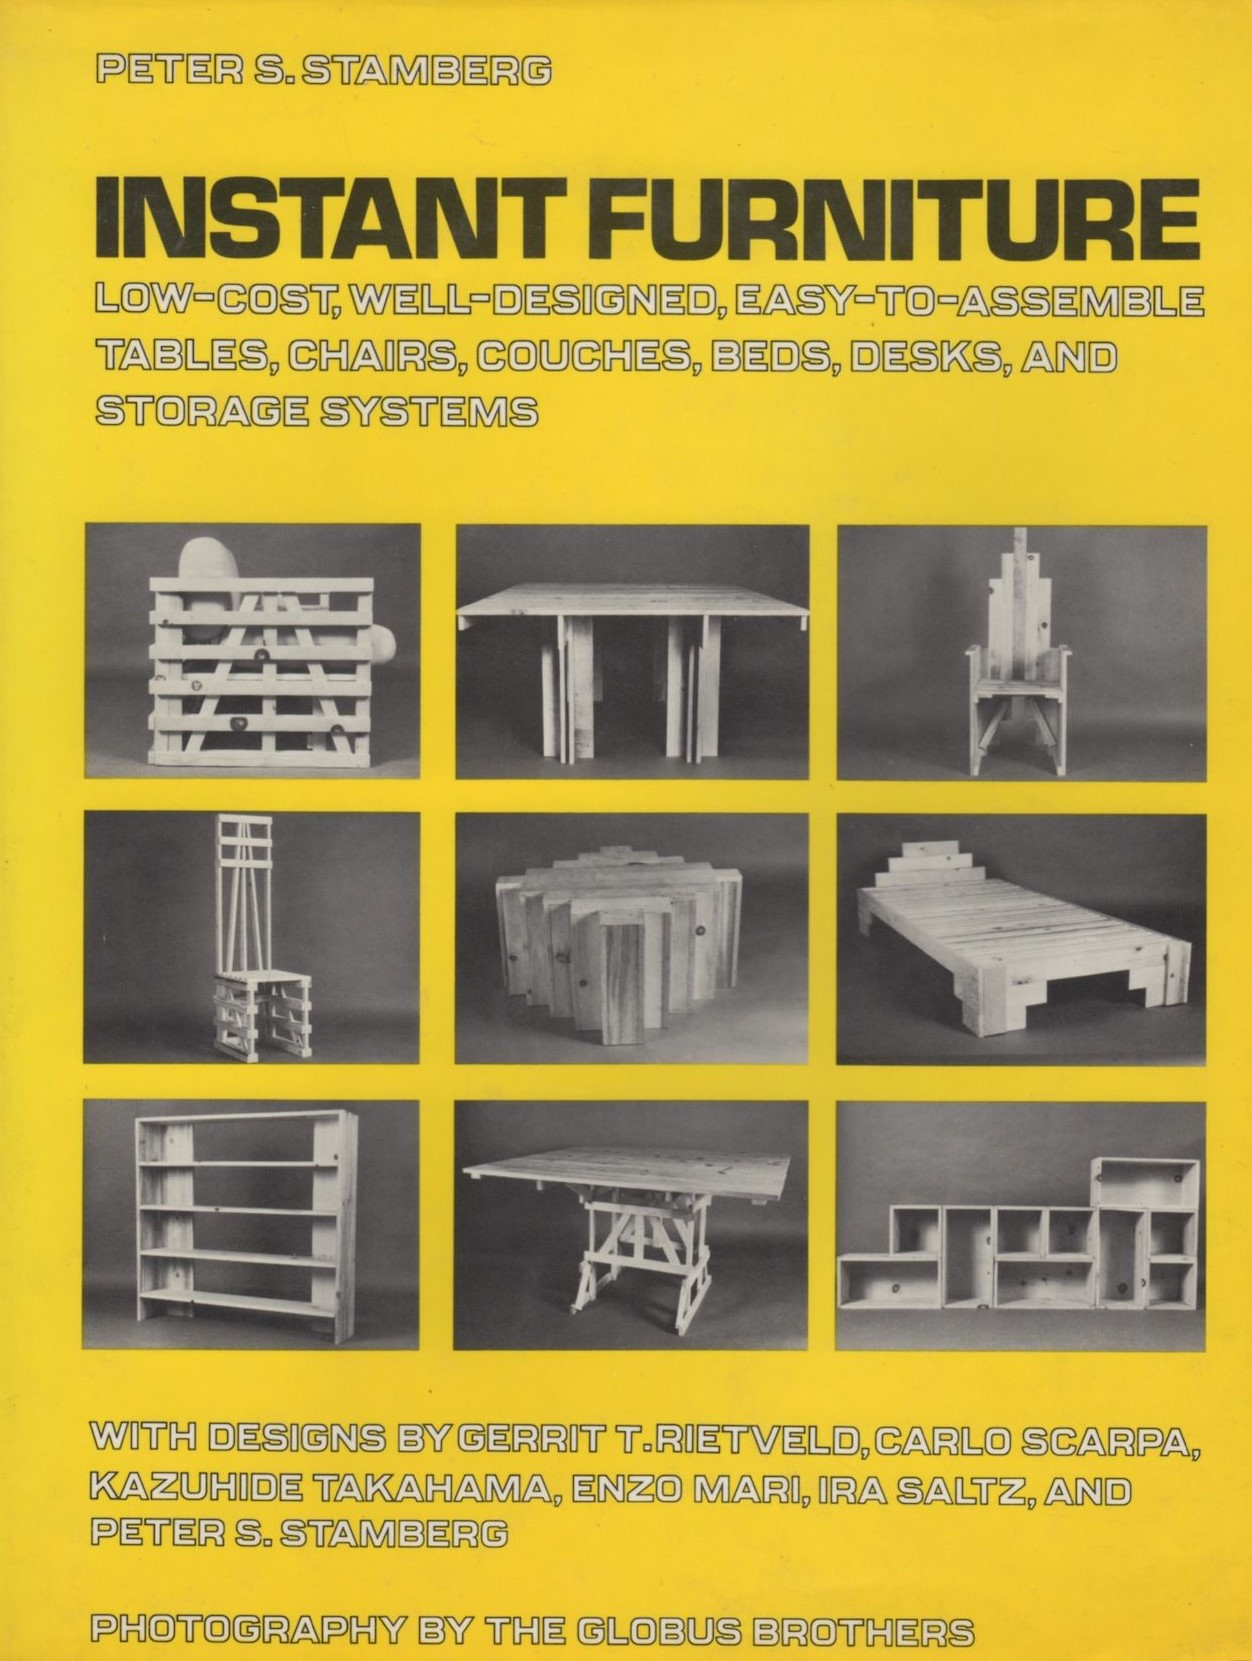 Peter Stamberg instant furniture DIY instruction design book